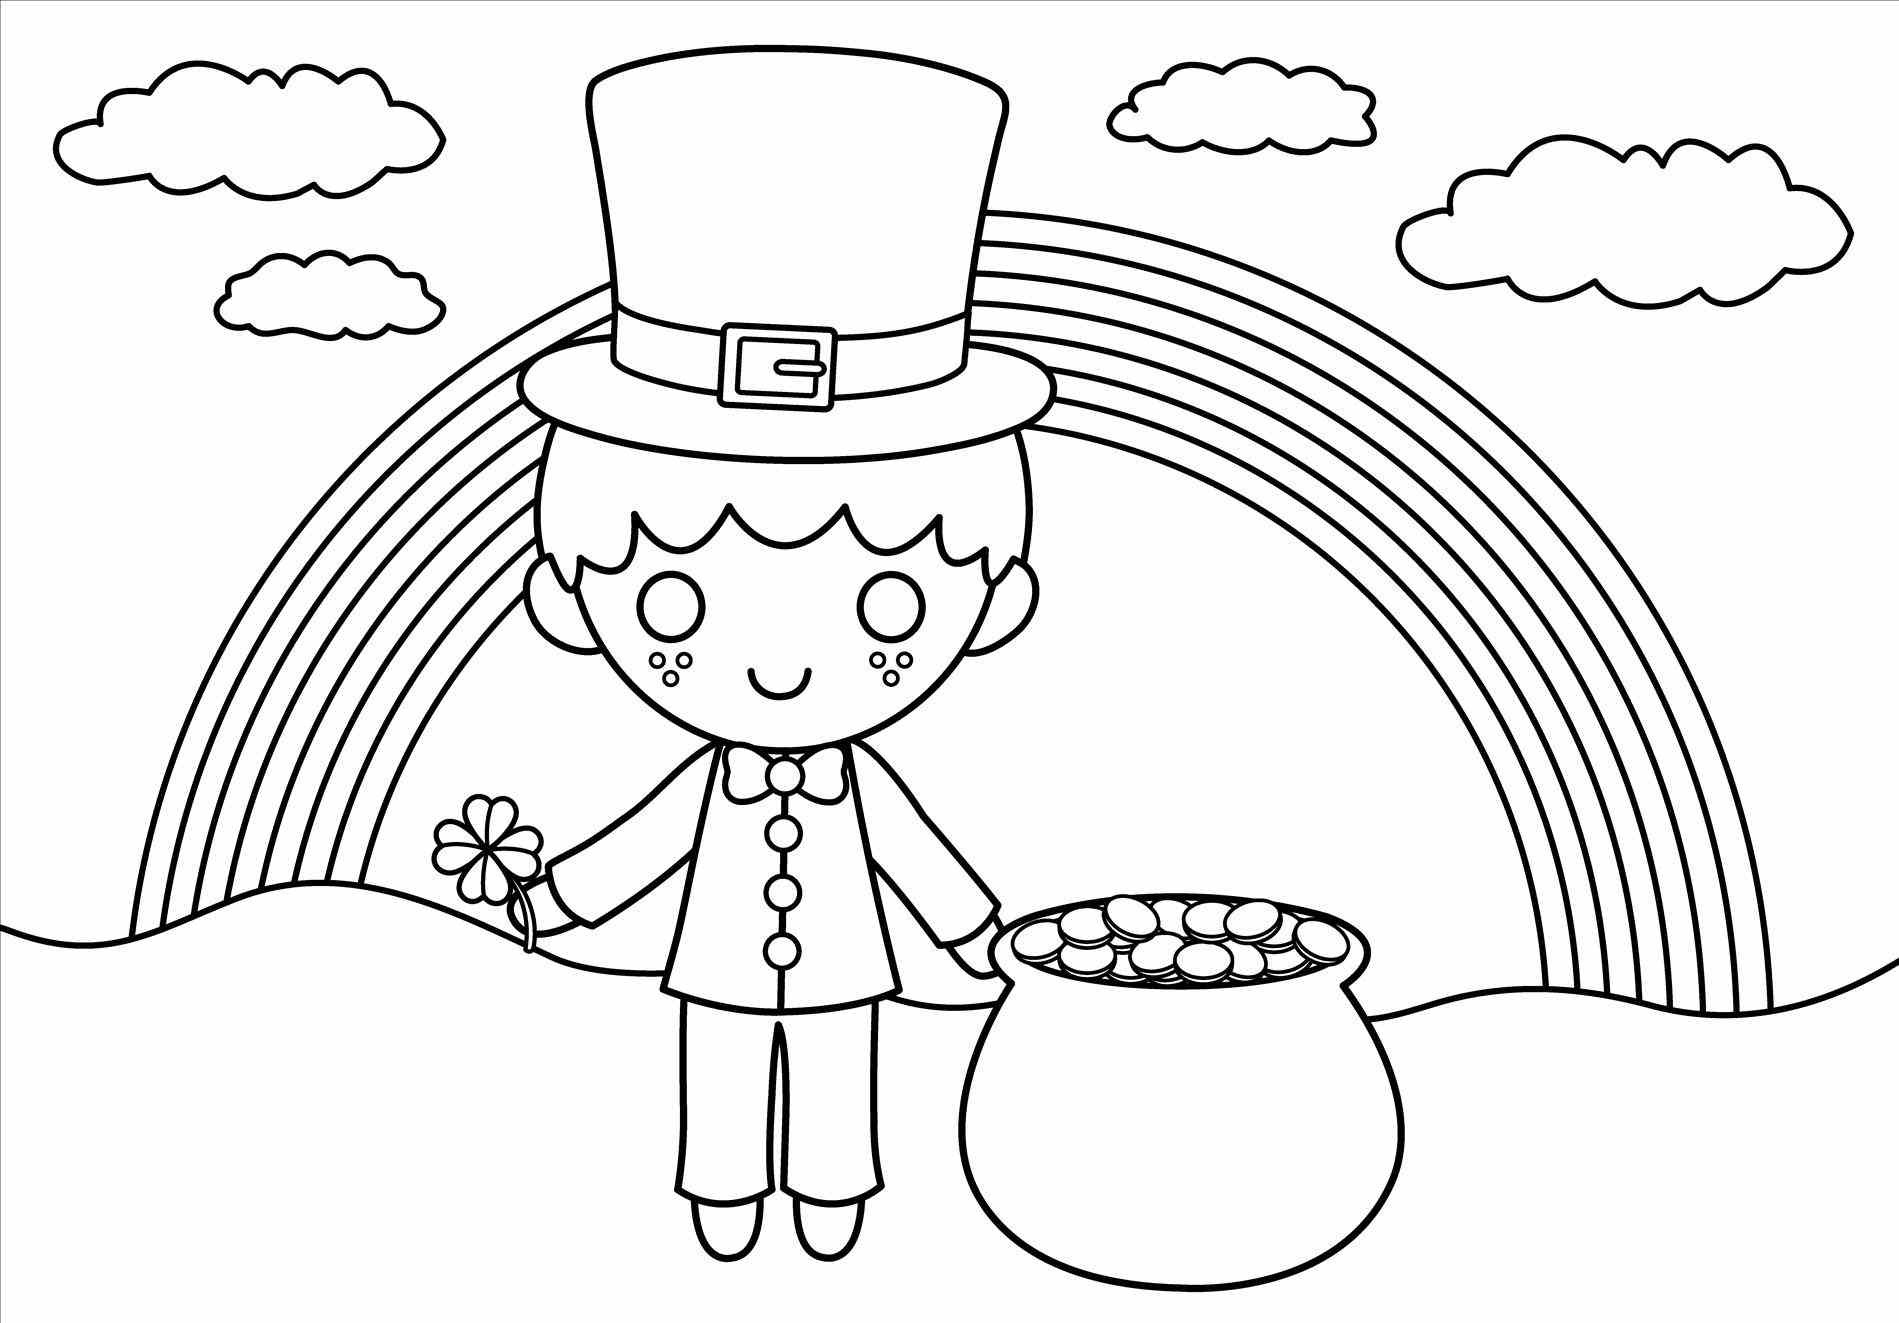 irish coloring pages ireland coloring pages at getcoloringscom free coloring irish pages